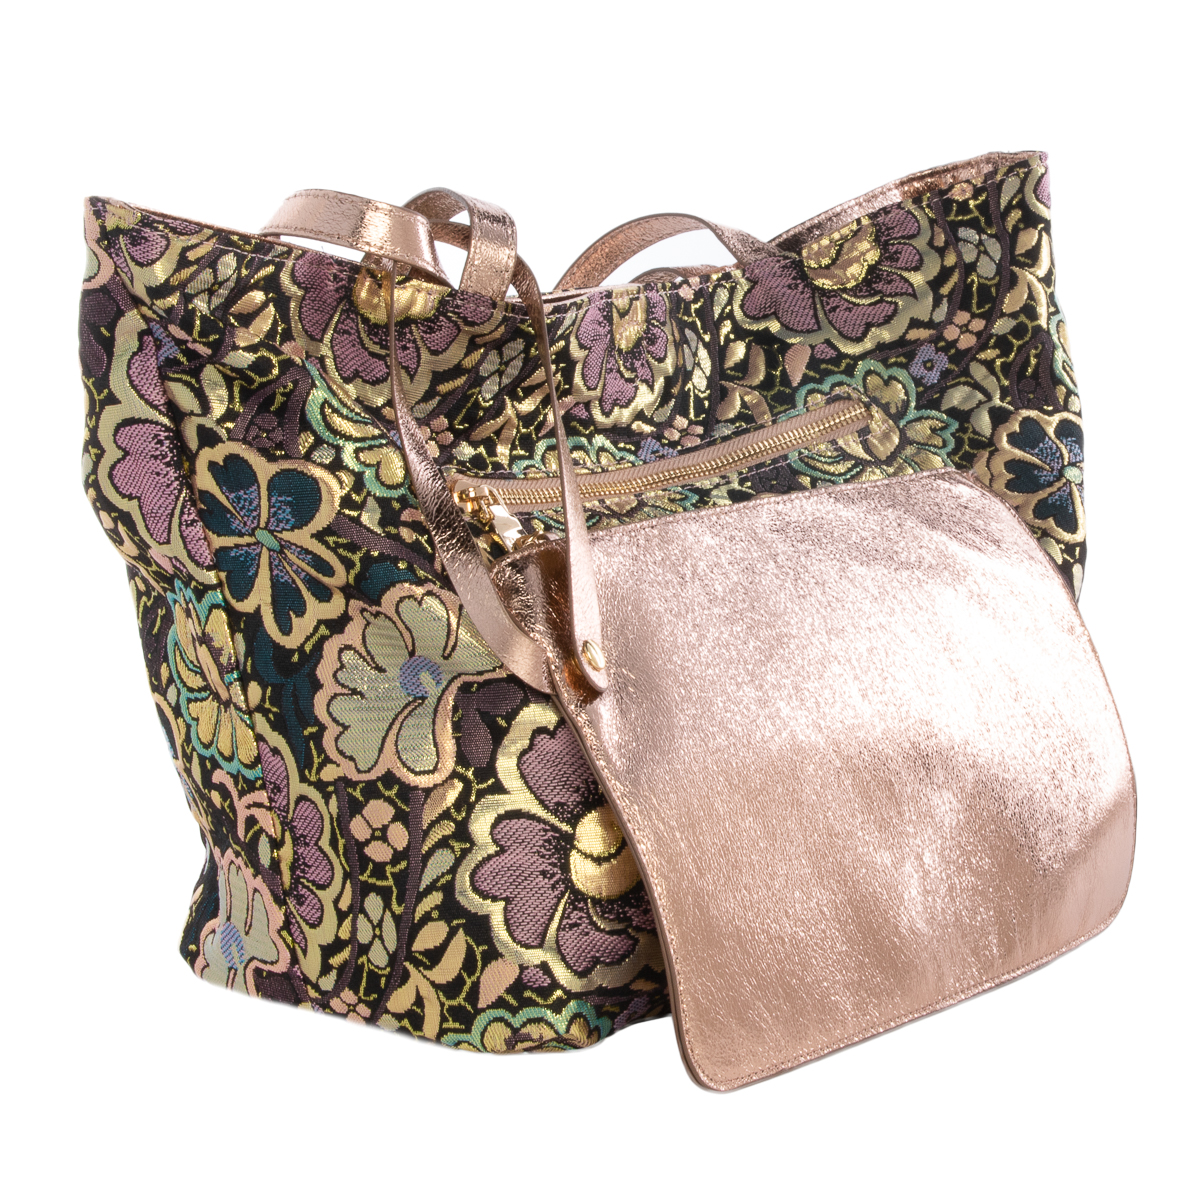 Steve-Madden-Handbags-For-Women-Tote-Bag-Reversible-with-Zip-Clutch-Purse thumbnail 21